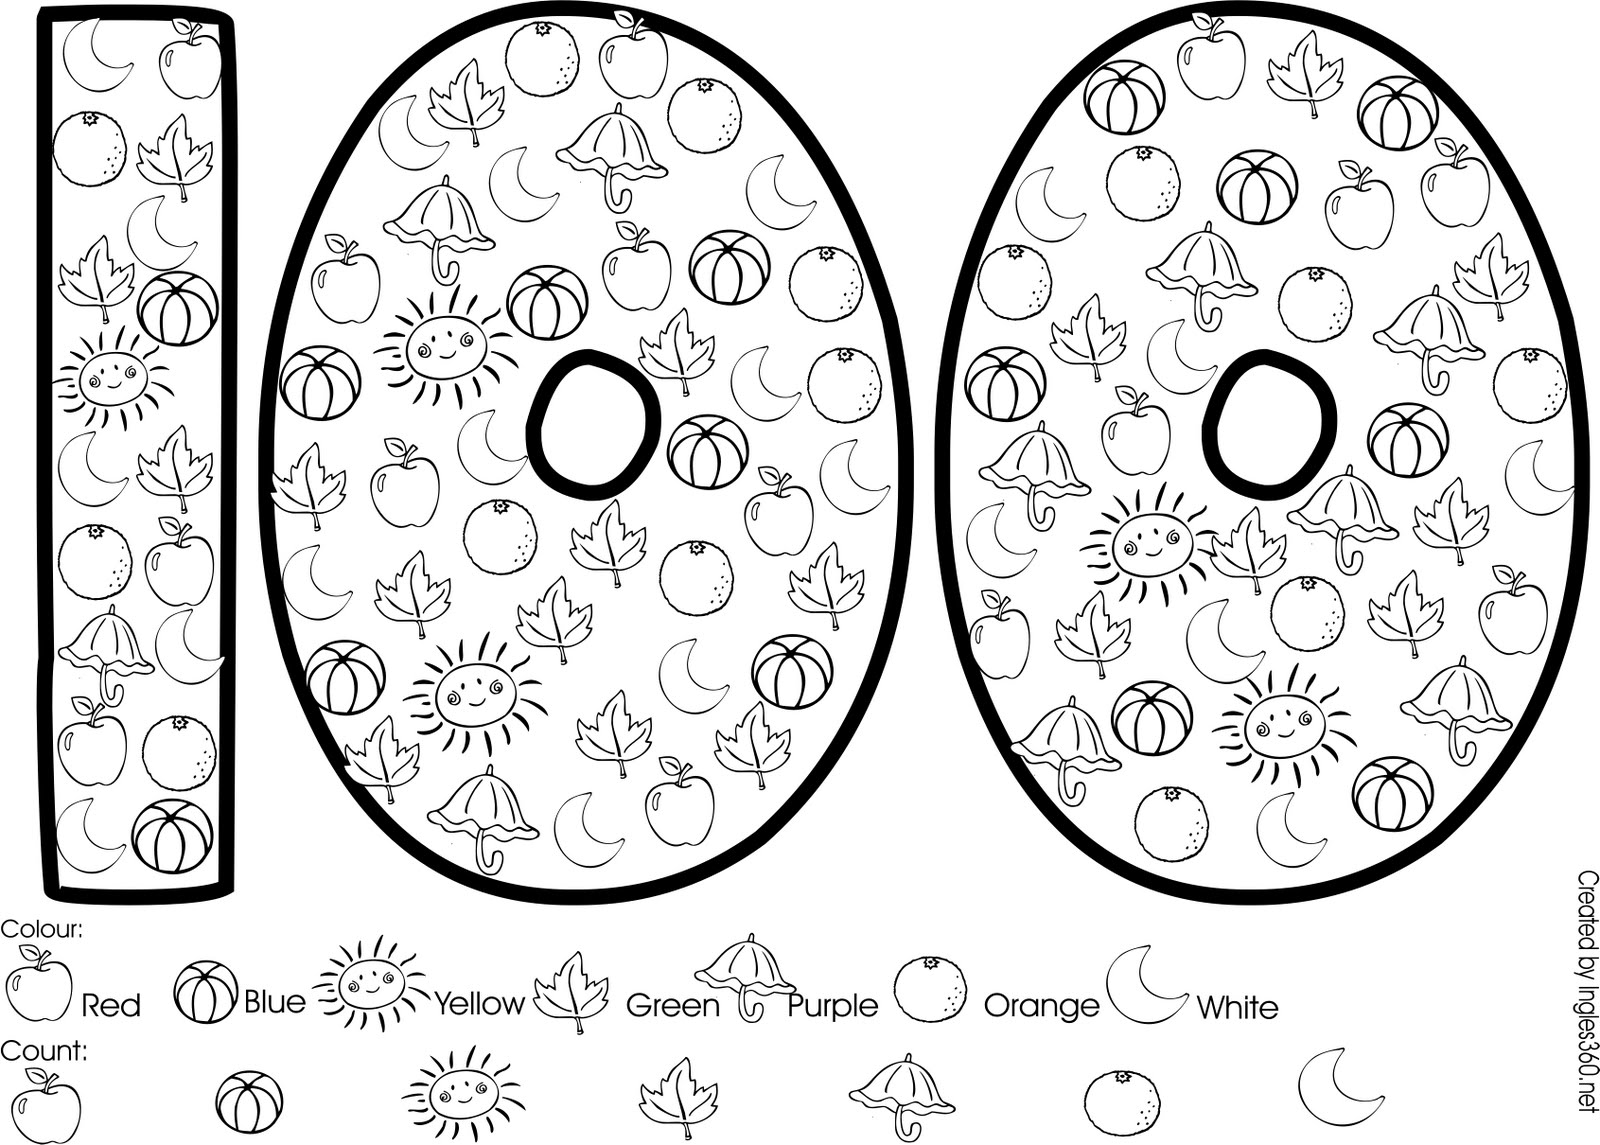 100 Days School Coloring Pages Free Image